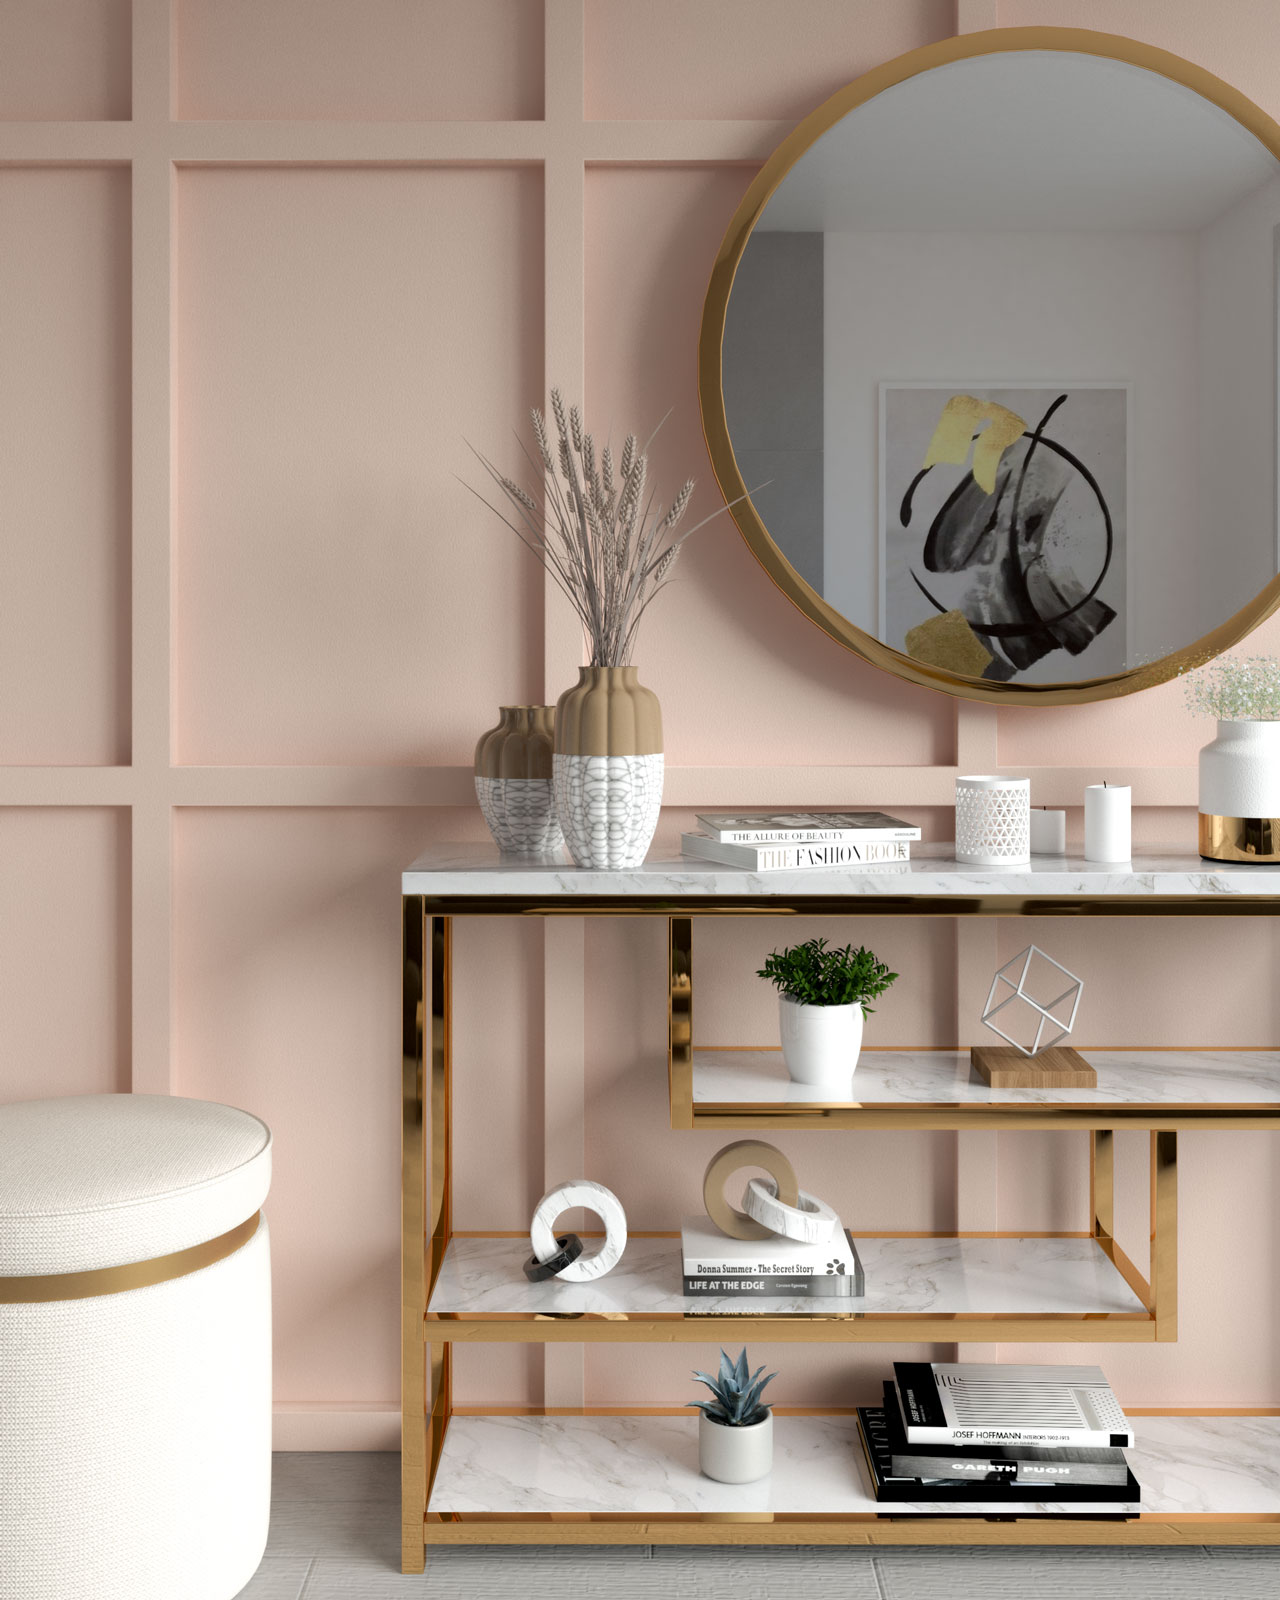 Blush wall with gold decor